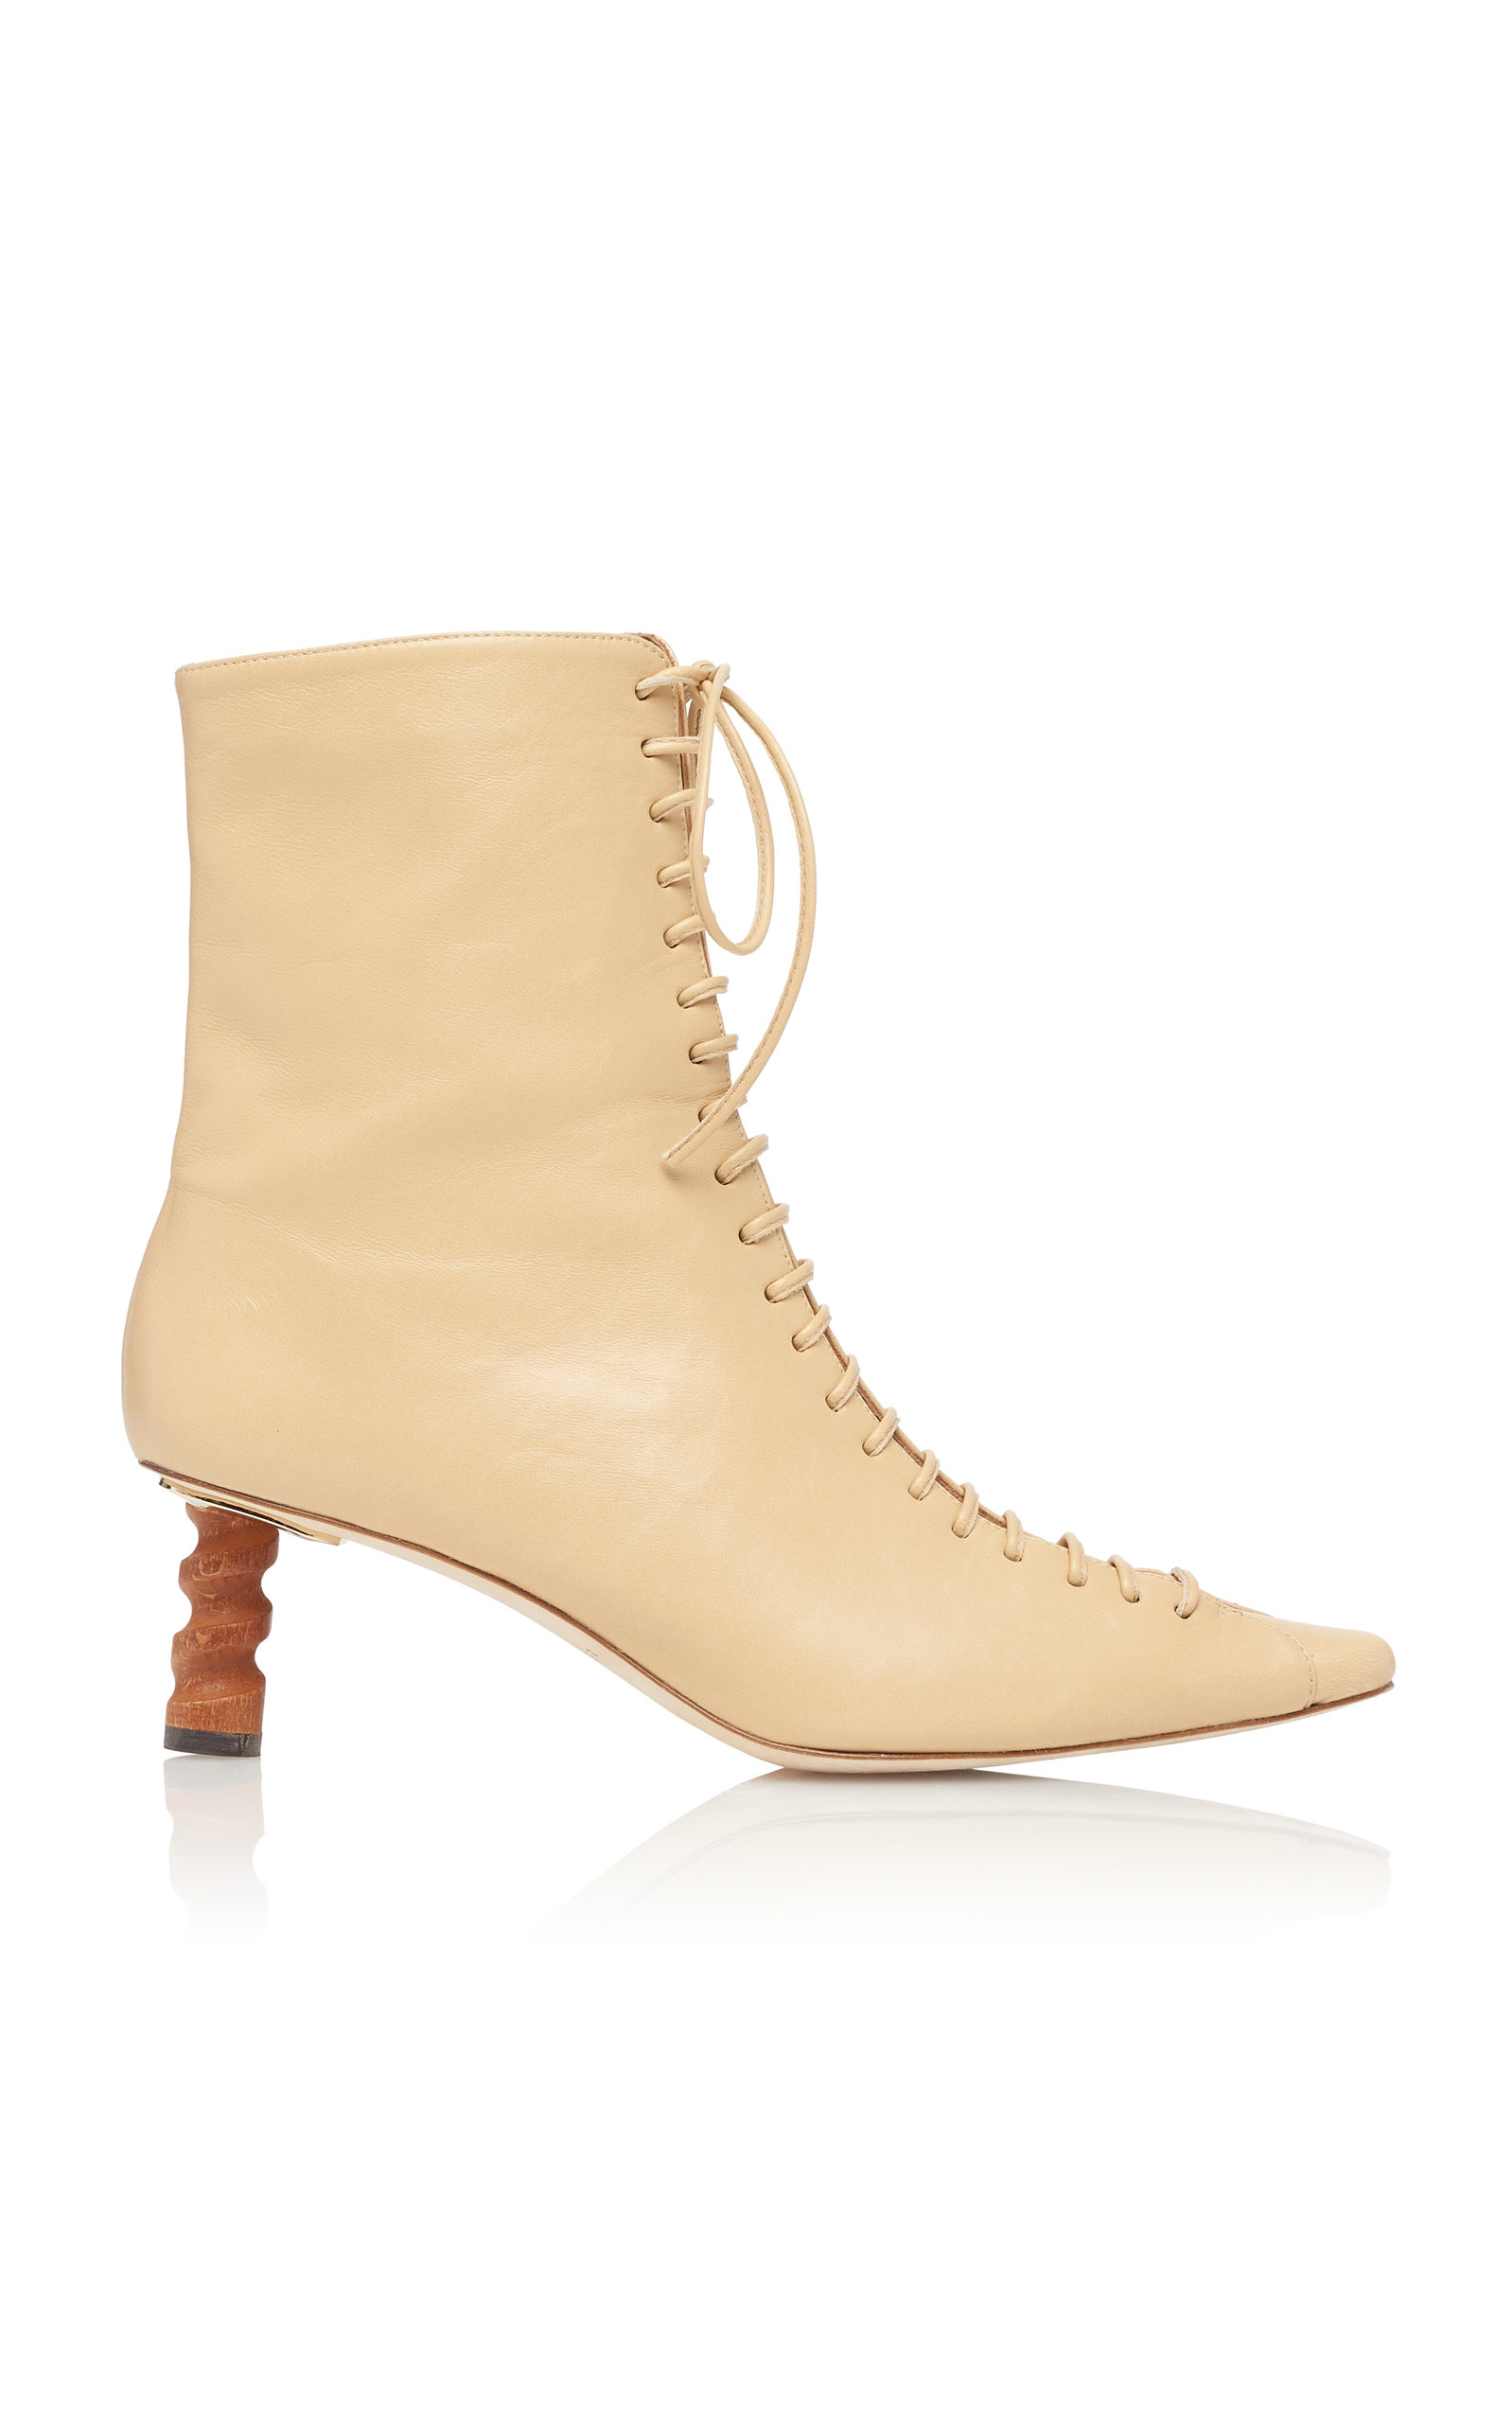 Rejina Pyo Boots SIMONE LEATHER BOOTS